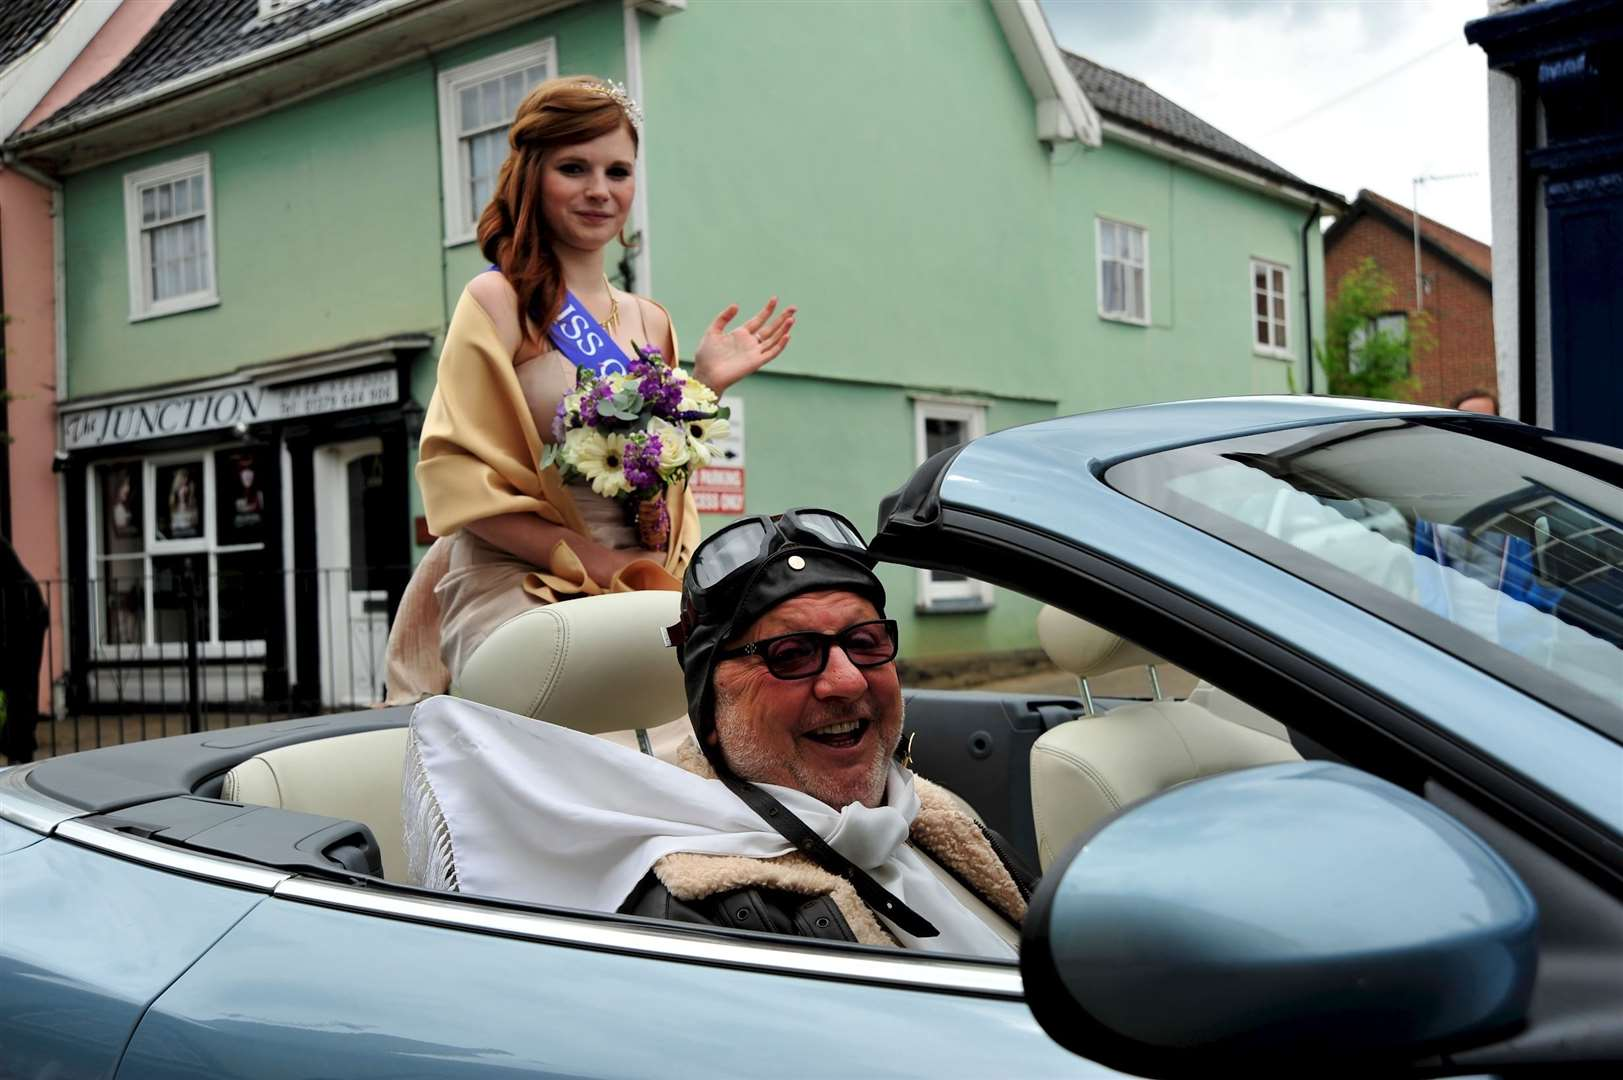 Diss Carnival Procession 2013. Alice Cater, driven by the late Peter Gillings.